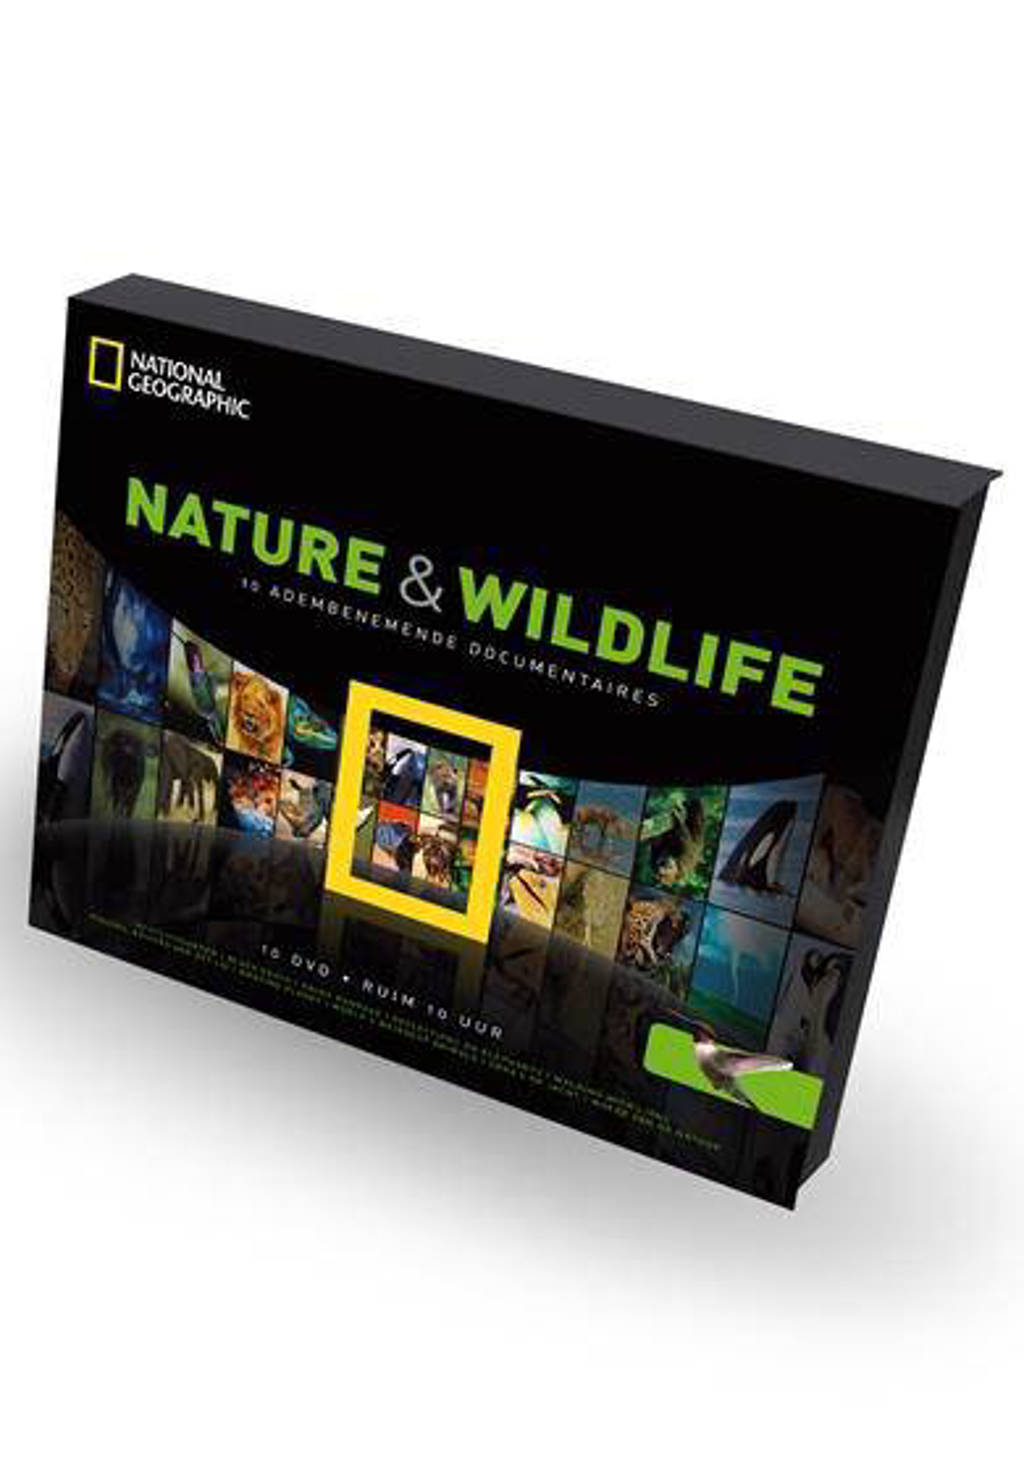 National geographic - The best of nature & wildlife (DVD)